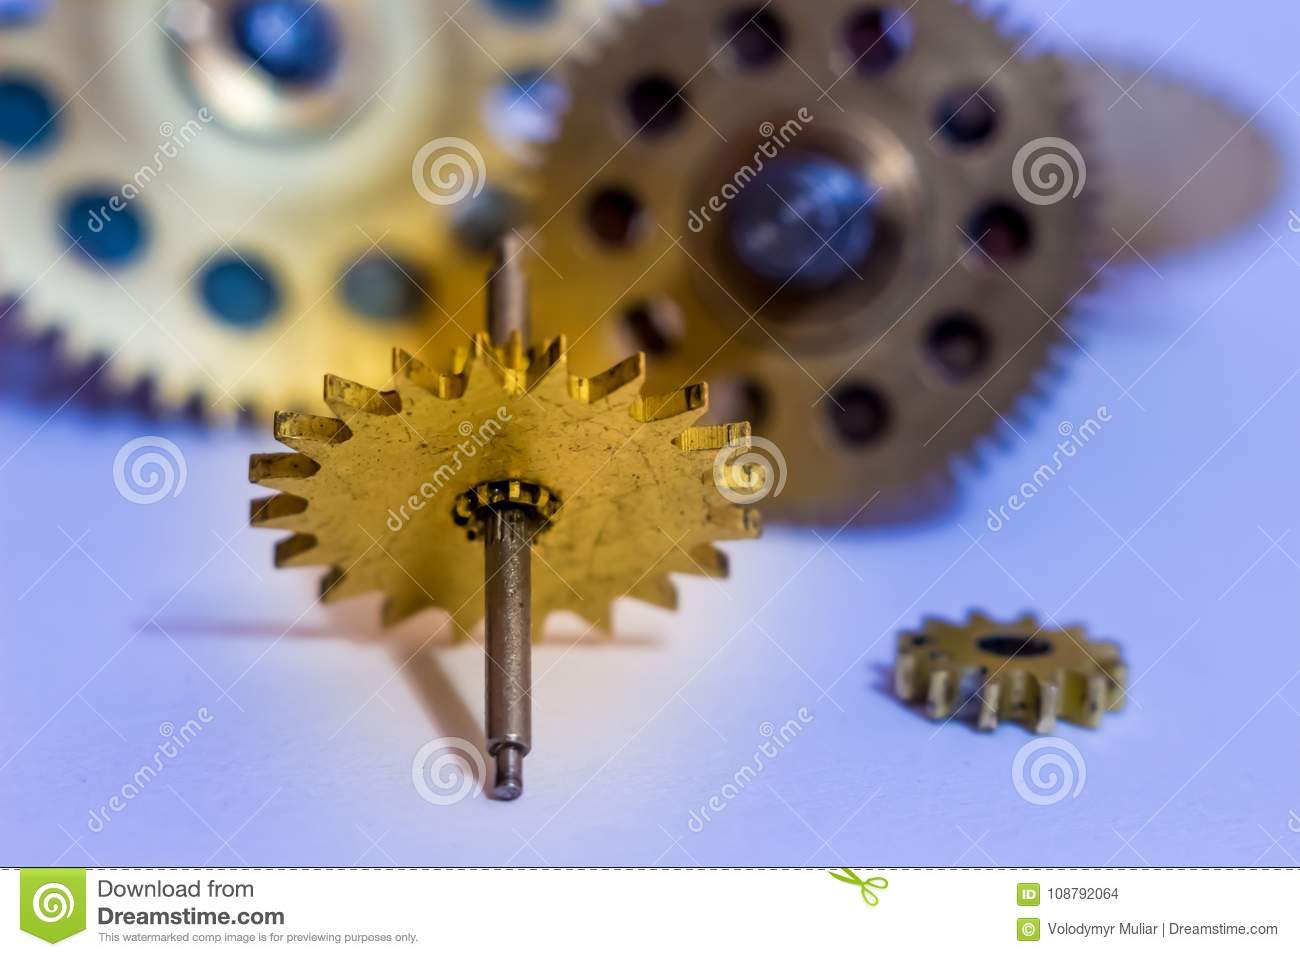 Gears from old watches, an example for studying ways of transfer